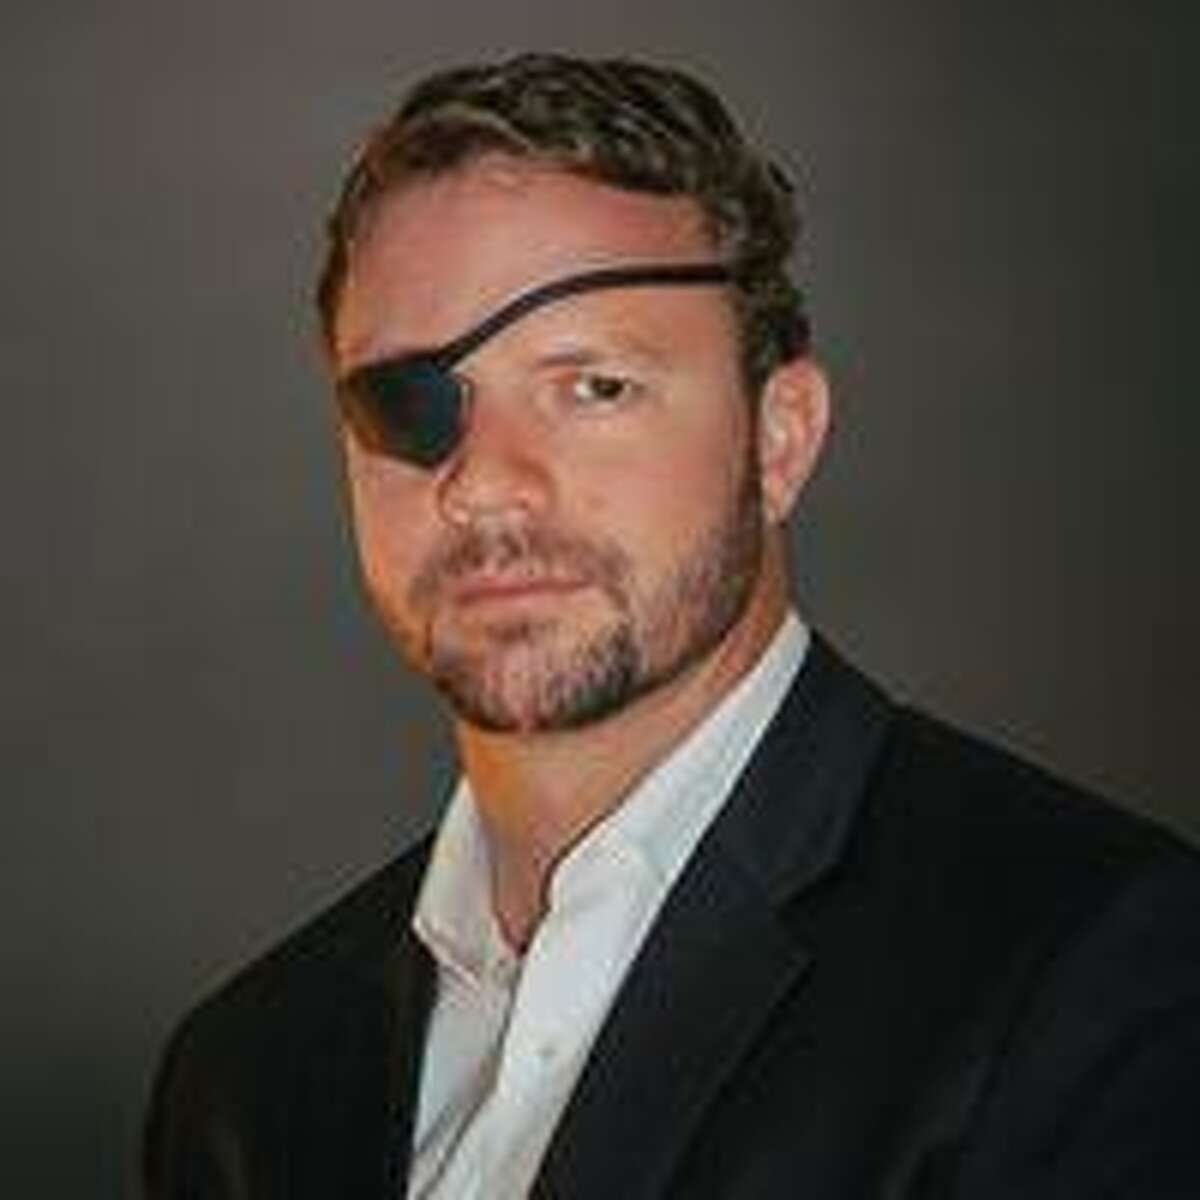 Former Navy SEAL Dan Crenshaw is vying for the Republican nomination for the 2nd Congressional District to replace retiring U.S. Rep. Ted Poe. He faces Kevin Roberts during a May 22 runoff.